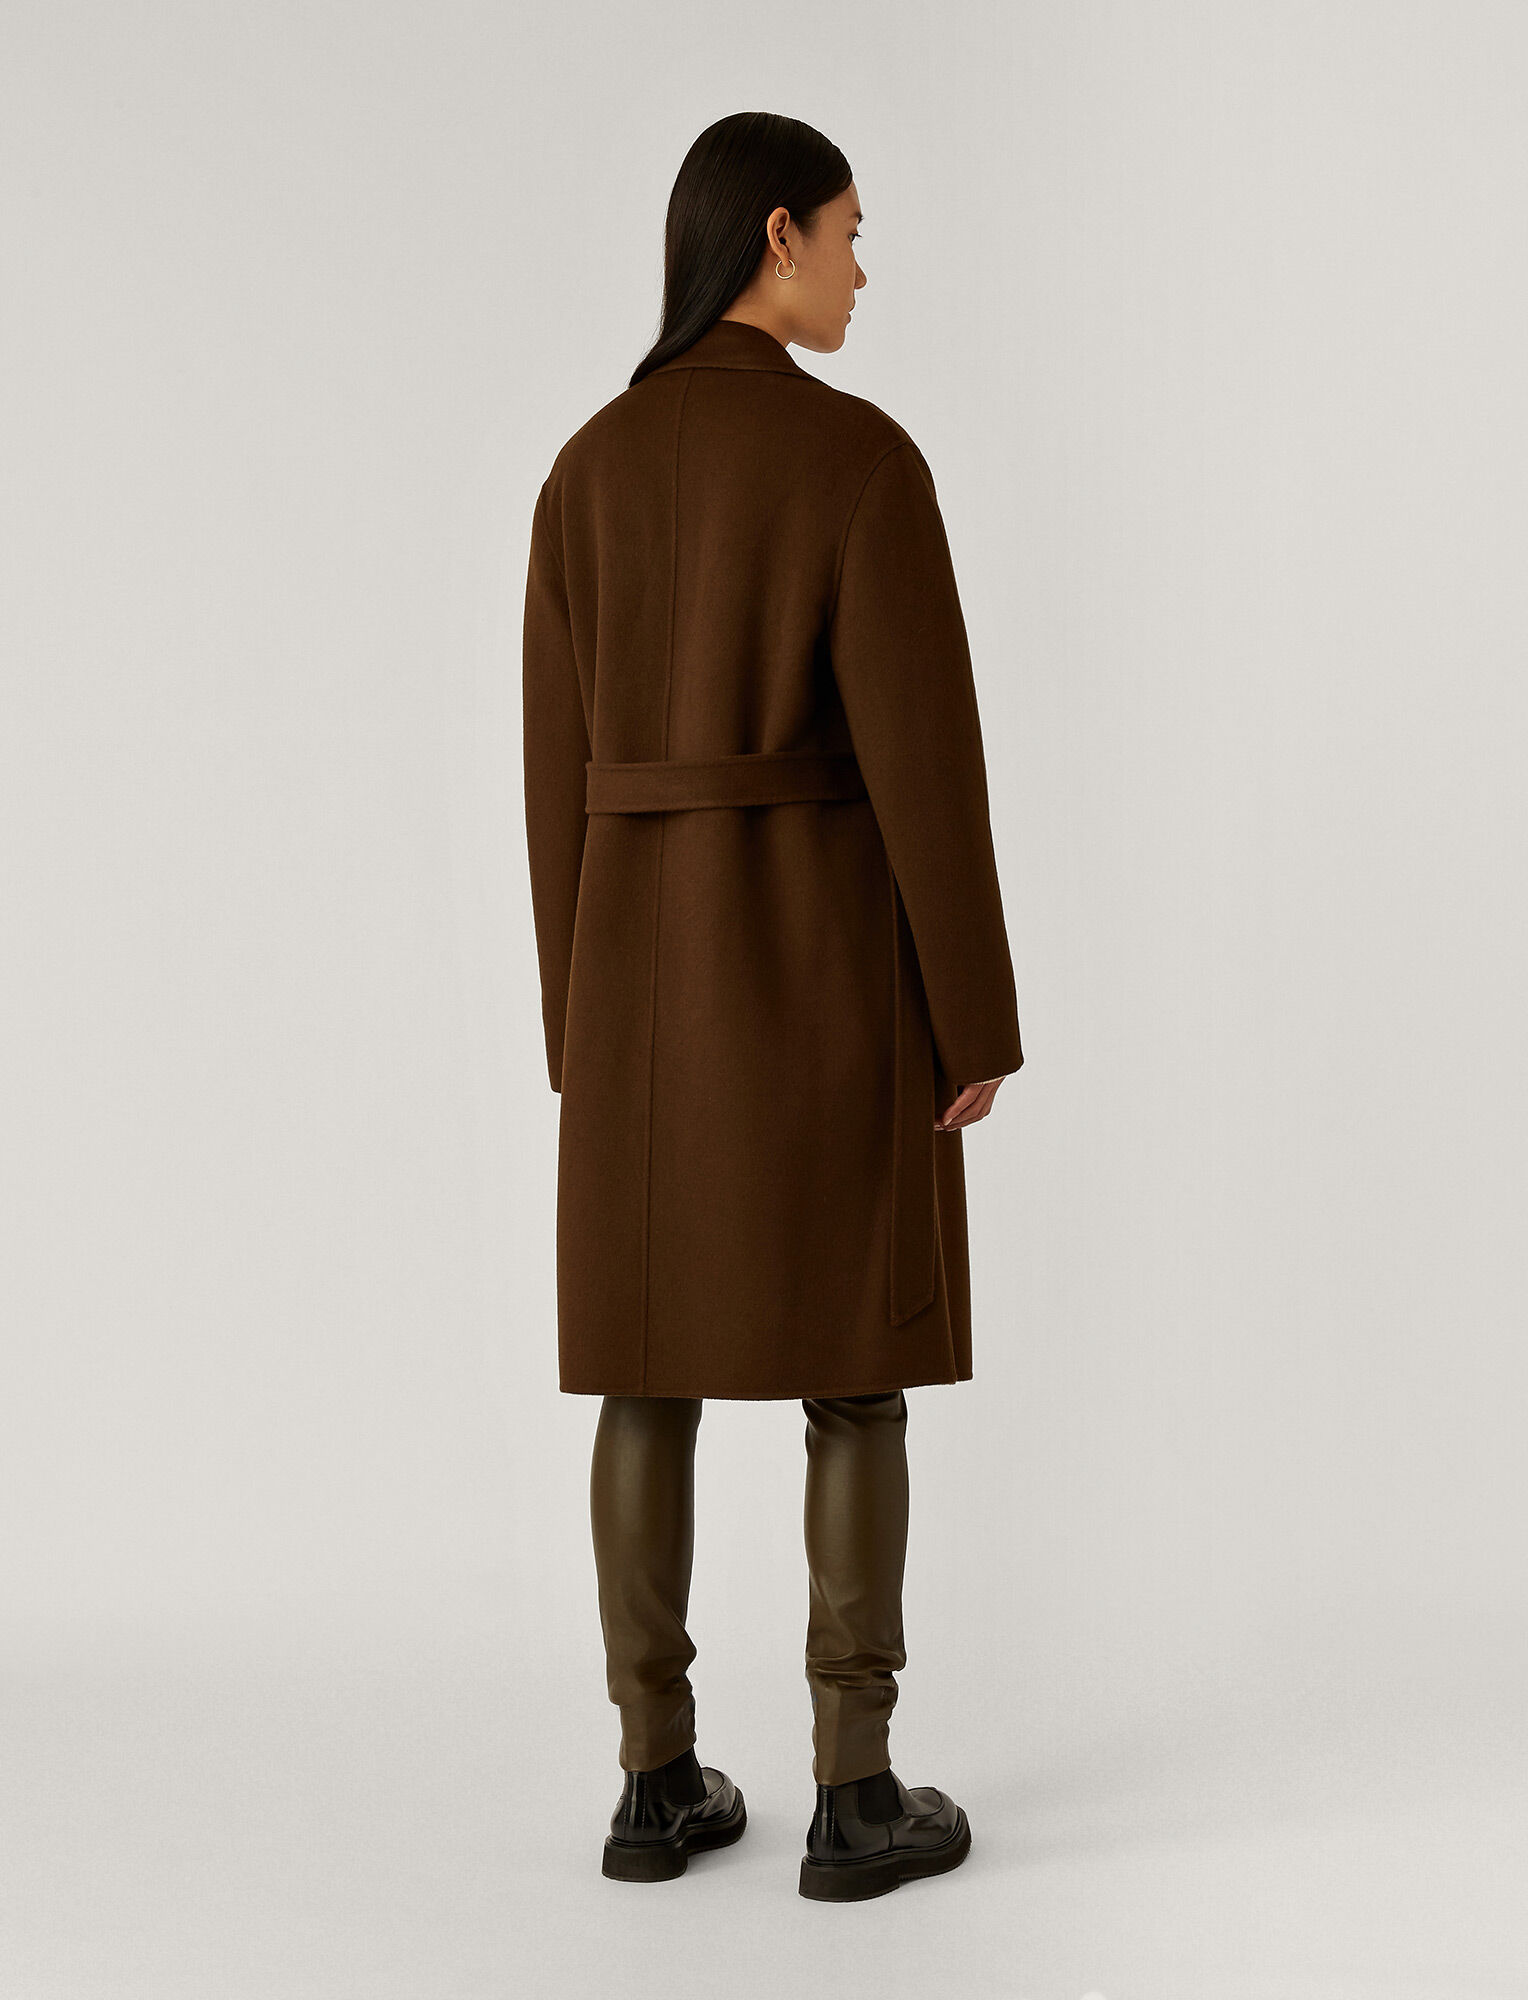 Joseph, Cenda Long Double Face Cashmere Coat, in Moss